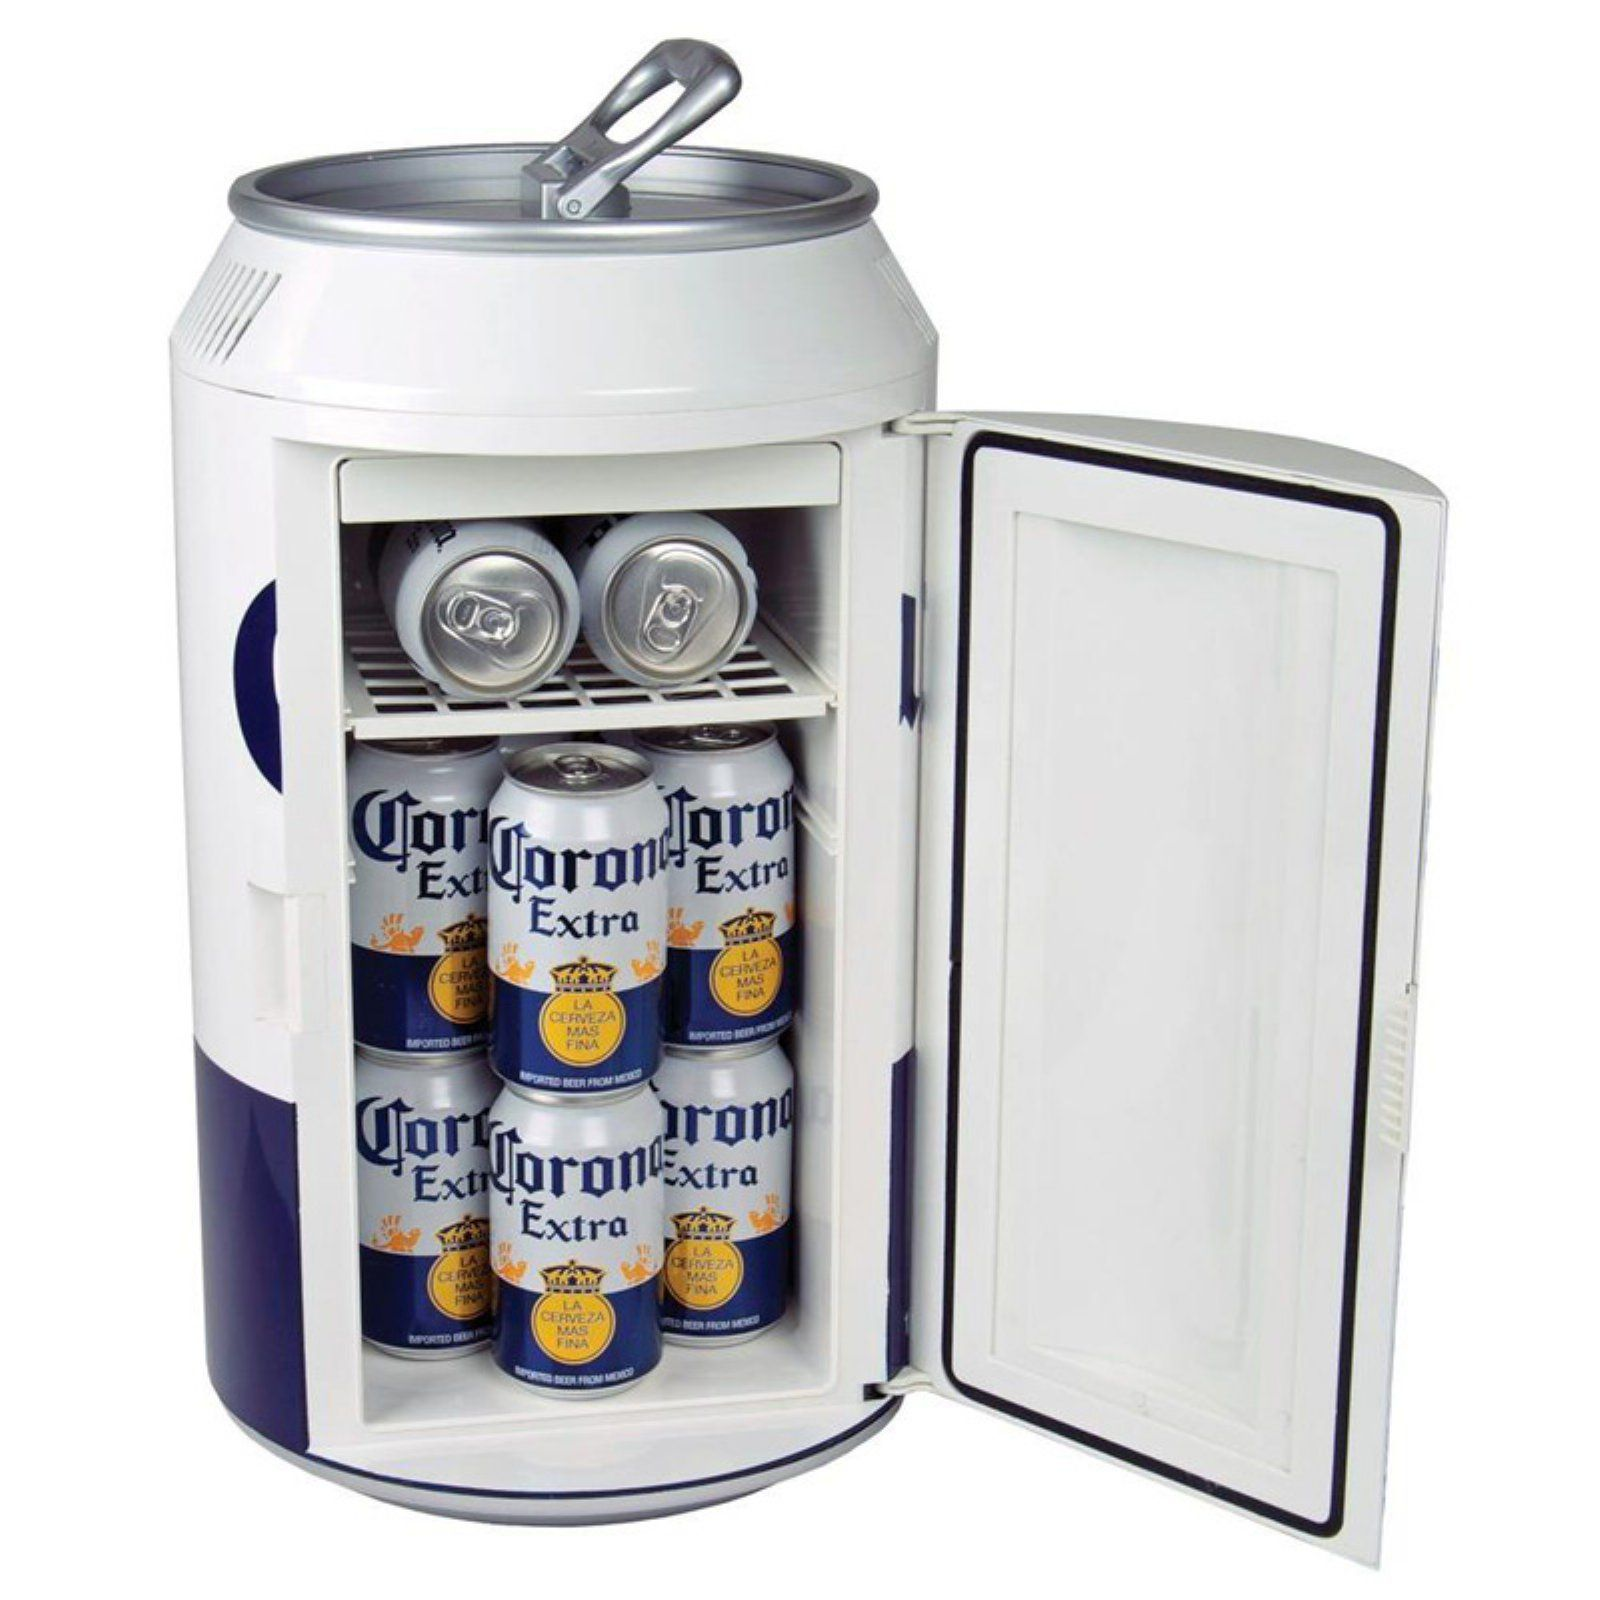 Corona Extra Cor12 12 Can Ac Dc Portable Mini Cooler Mini Fridge Walmart Com In 2020 Beer Fridge Mini Cooler Canning